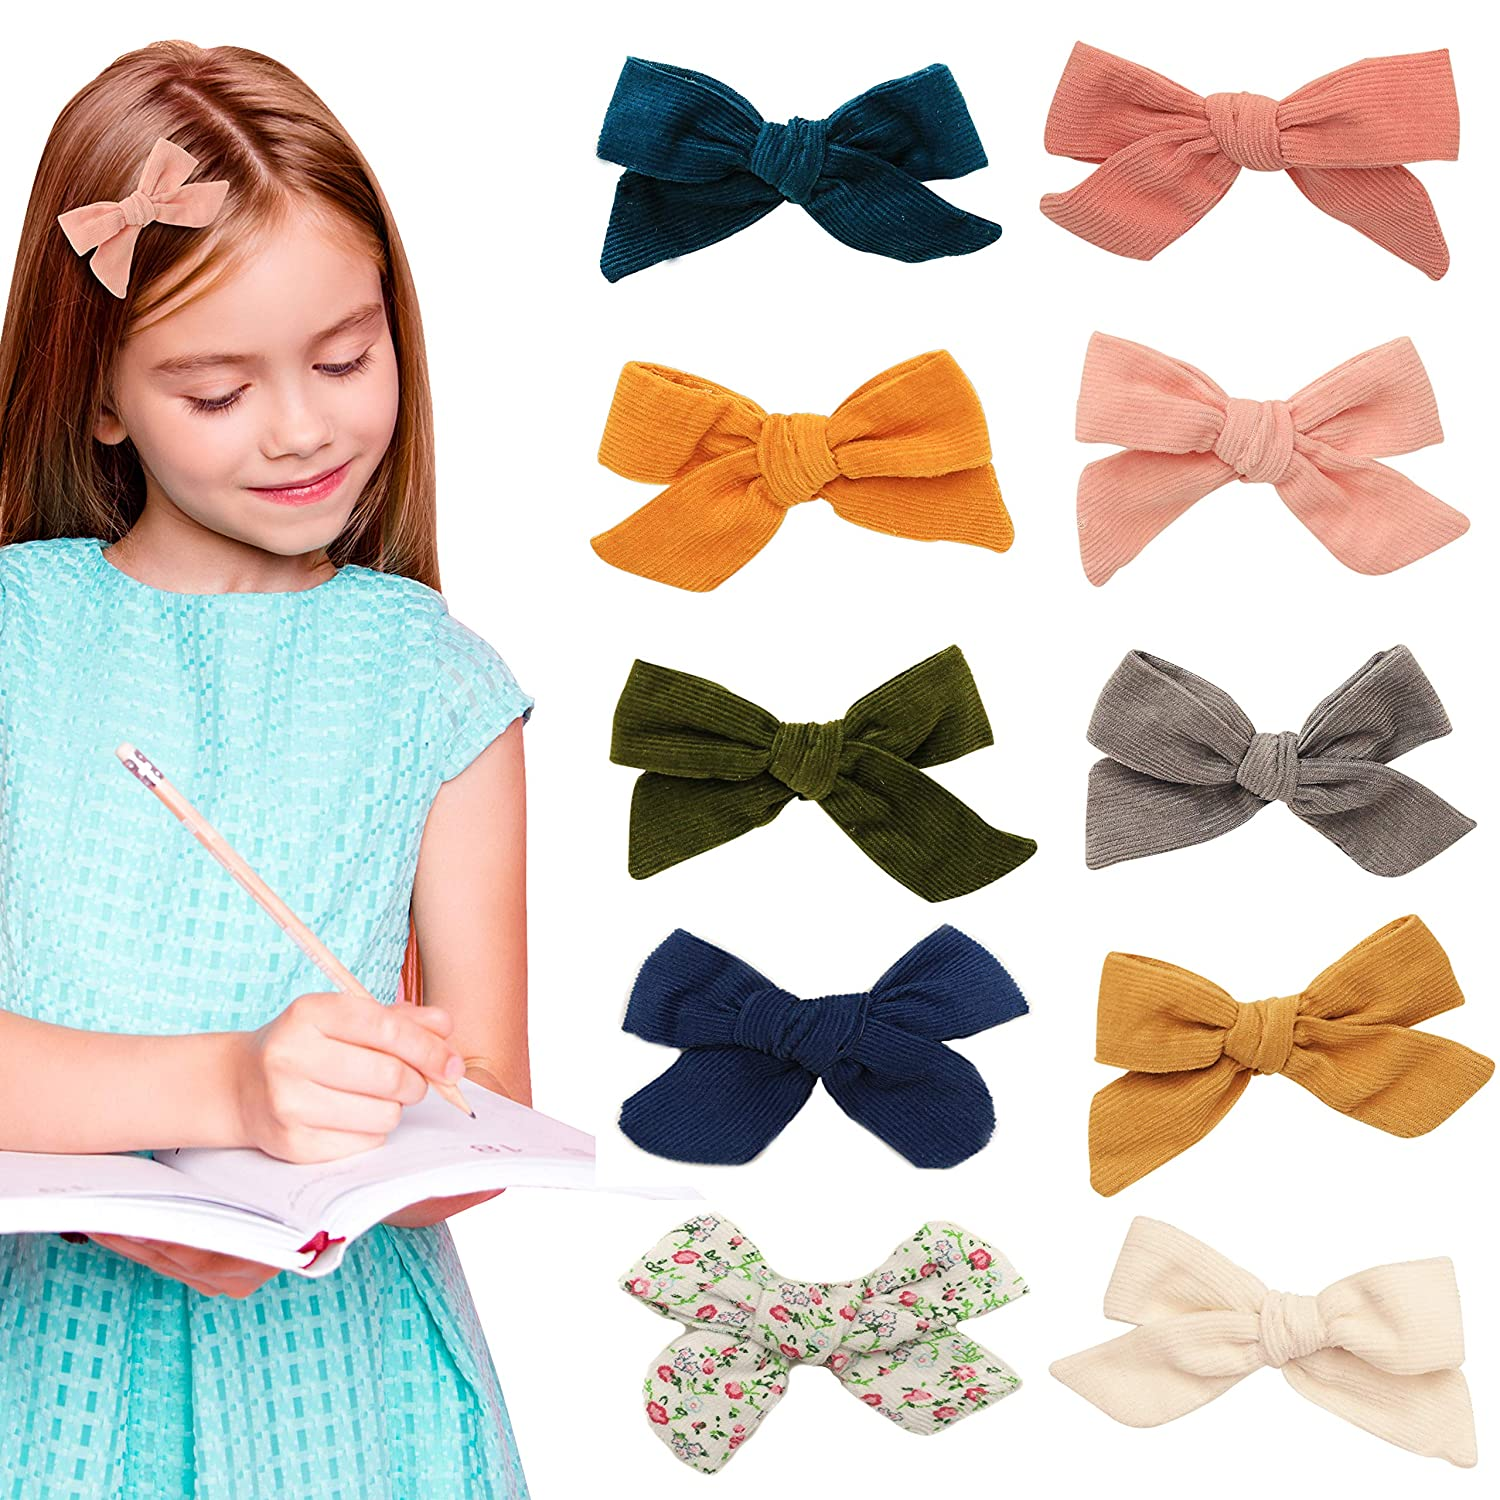 toddler bow clips Cotton Lace bow hair clips hair accessories lace bow clip fringe clips peach lace bows,baby bow clips